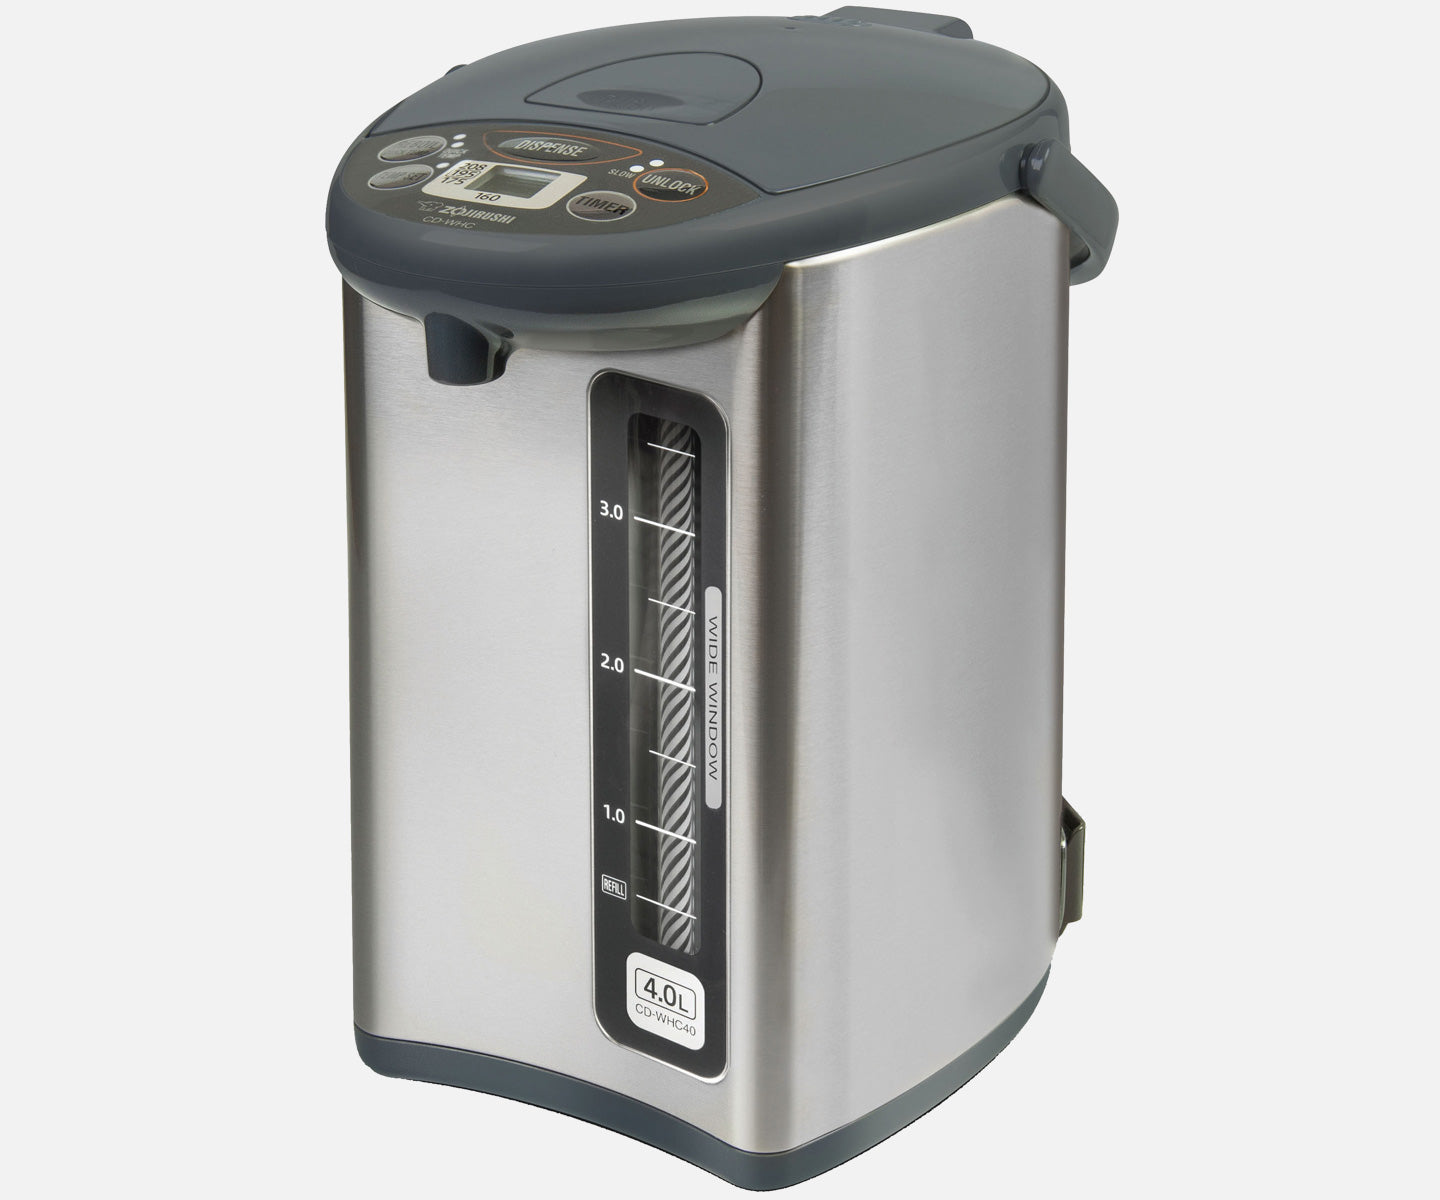 Micom Water Boiler & Warmer CD-WHC40